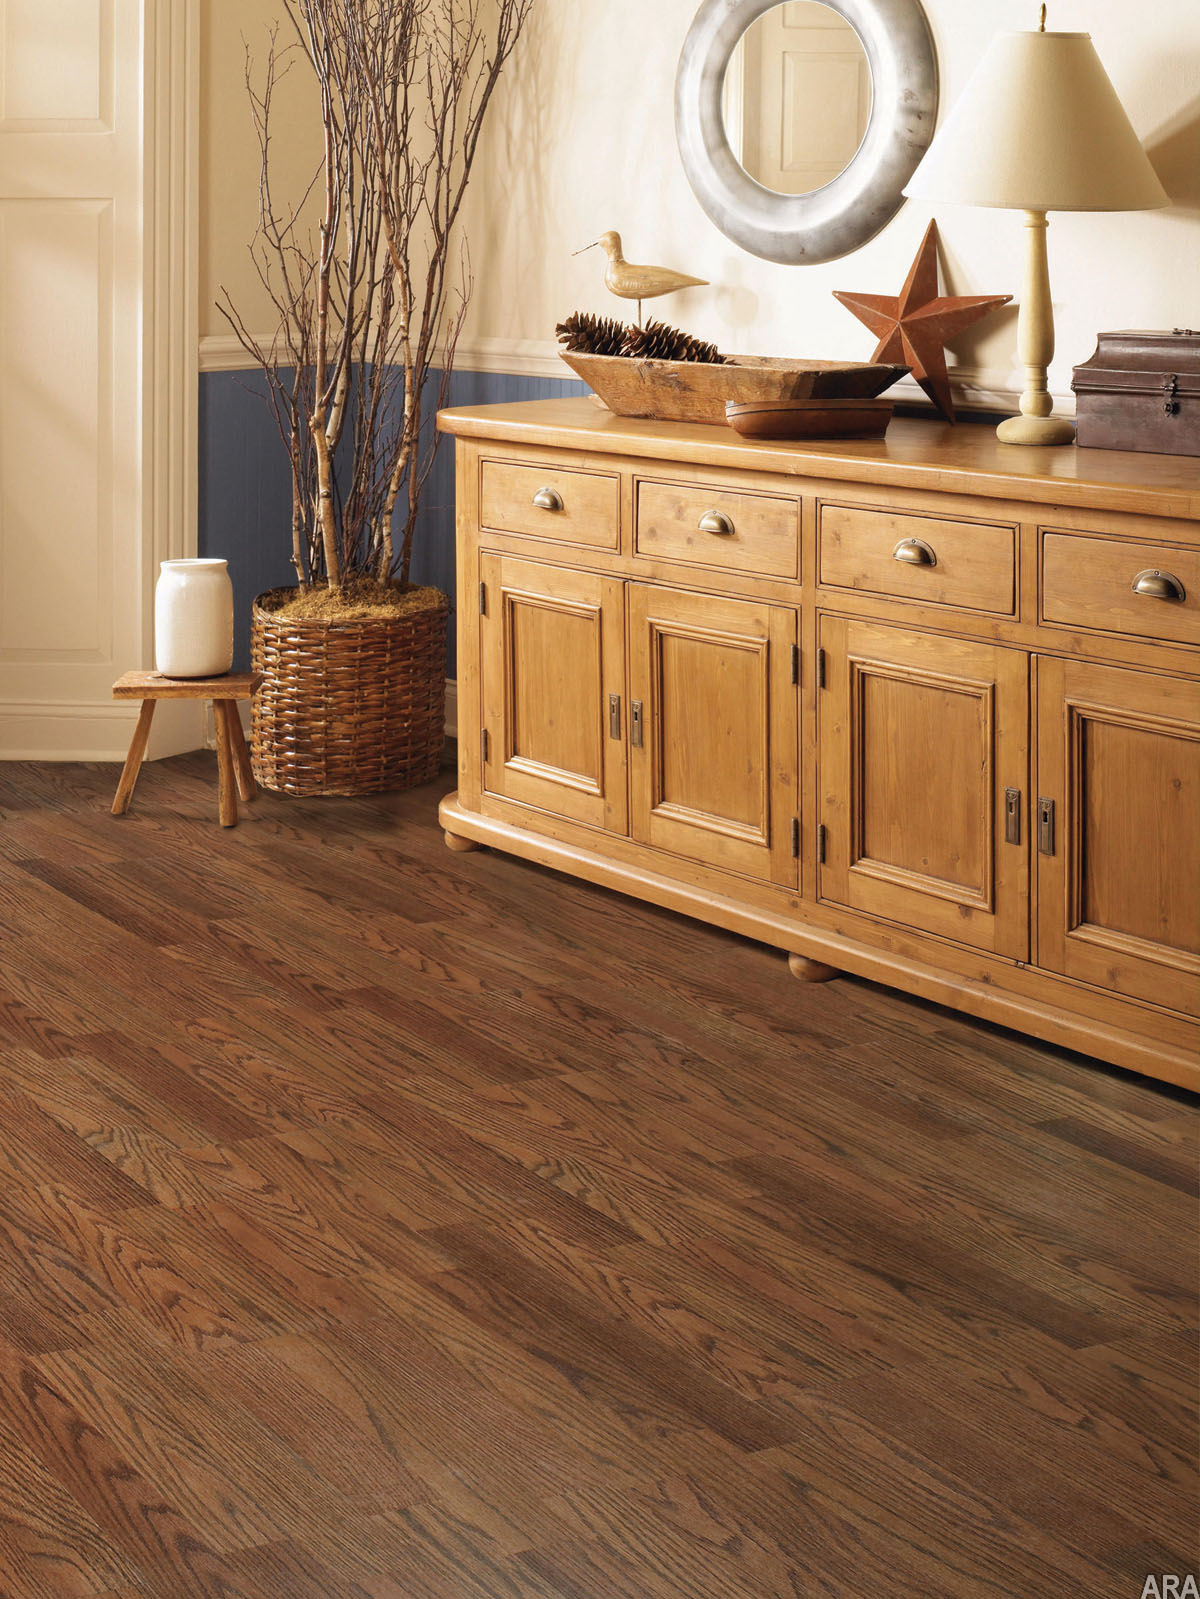 Laminate Flooring Is An Alternative To Real Wood Quality